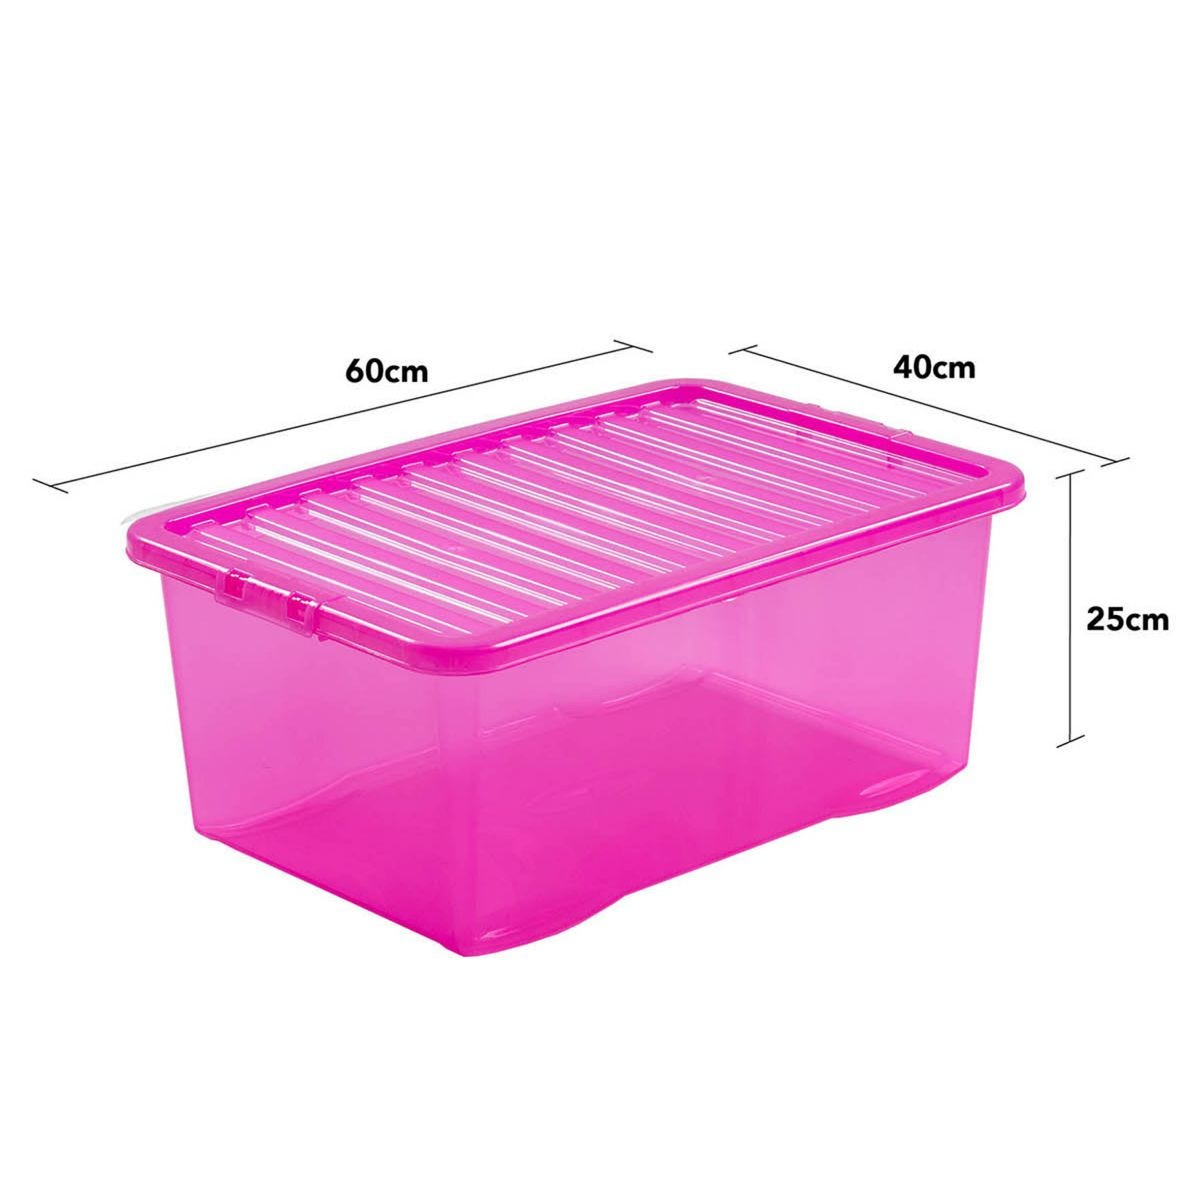 Wham Crystal Pink Storage Box with Lid 45L - Set of 3